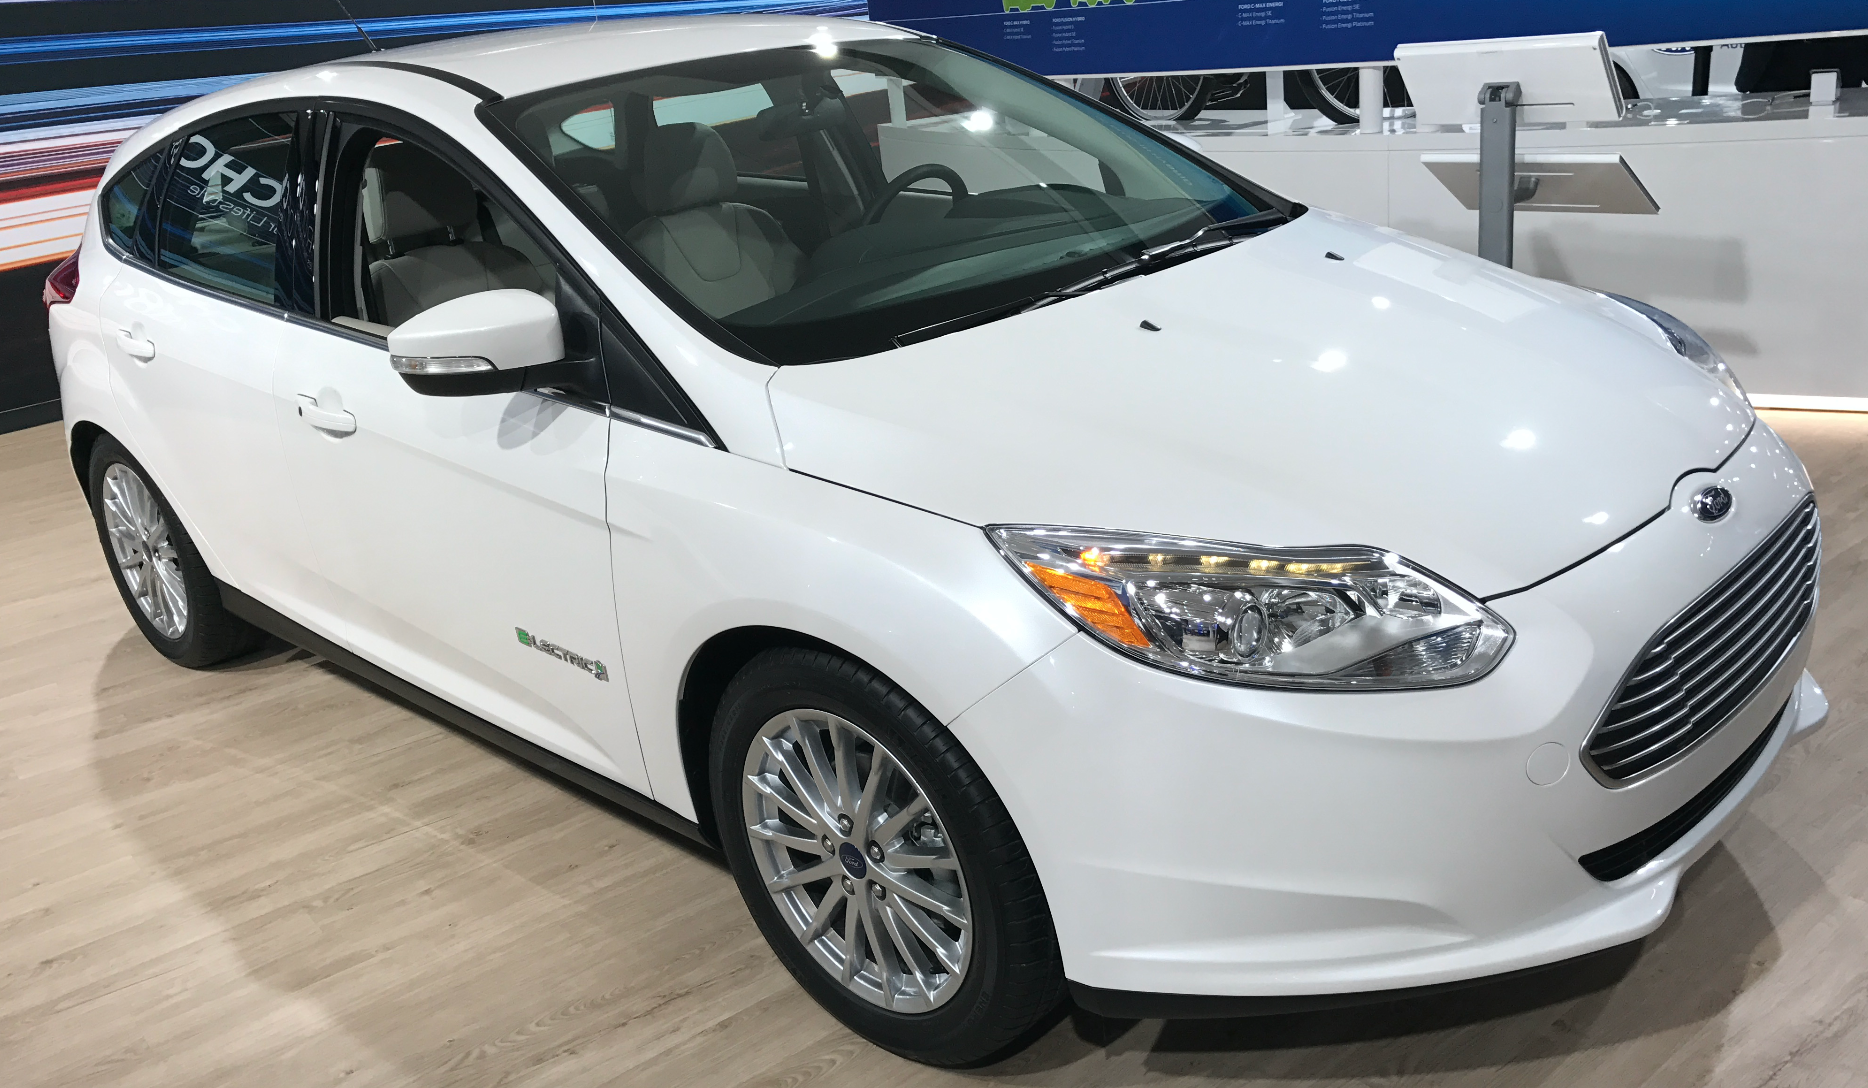 The Ford Focus